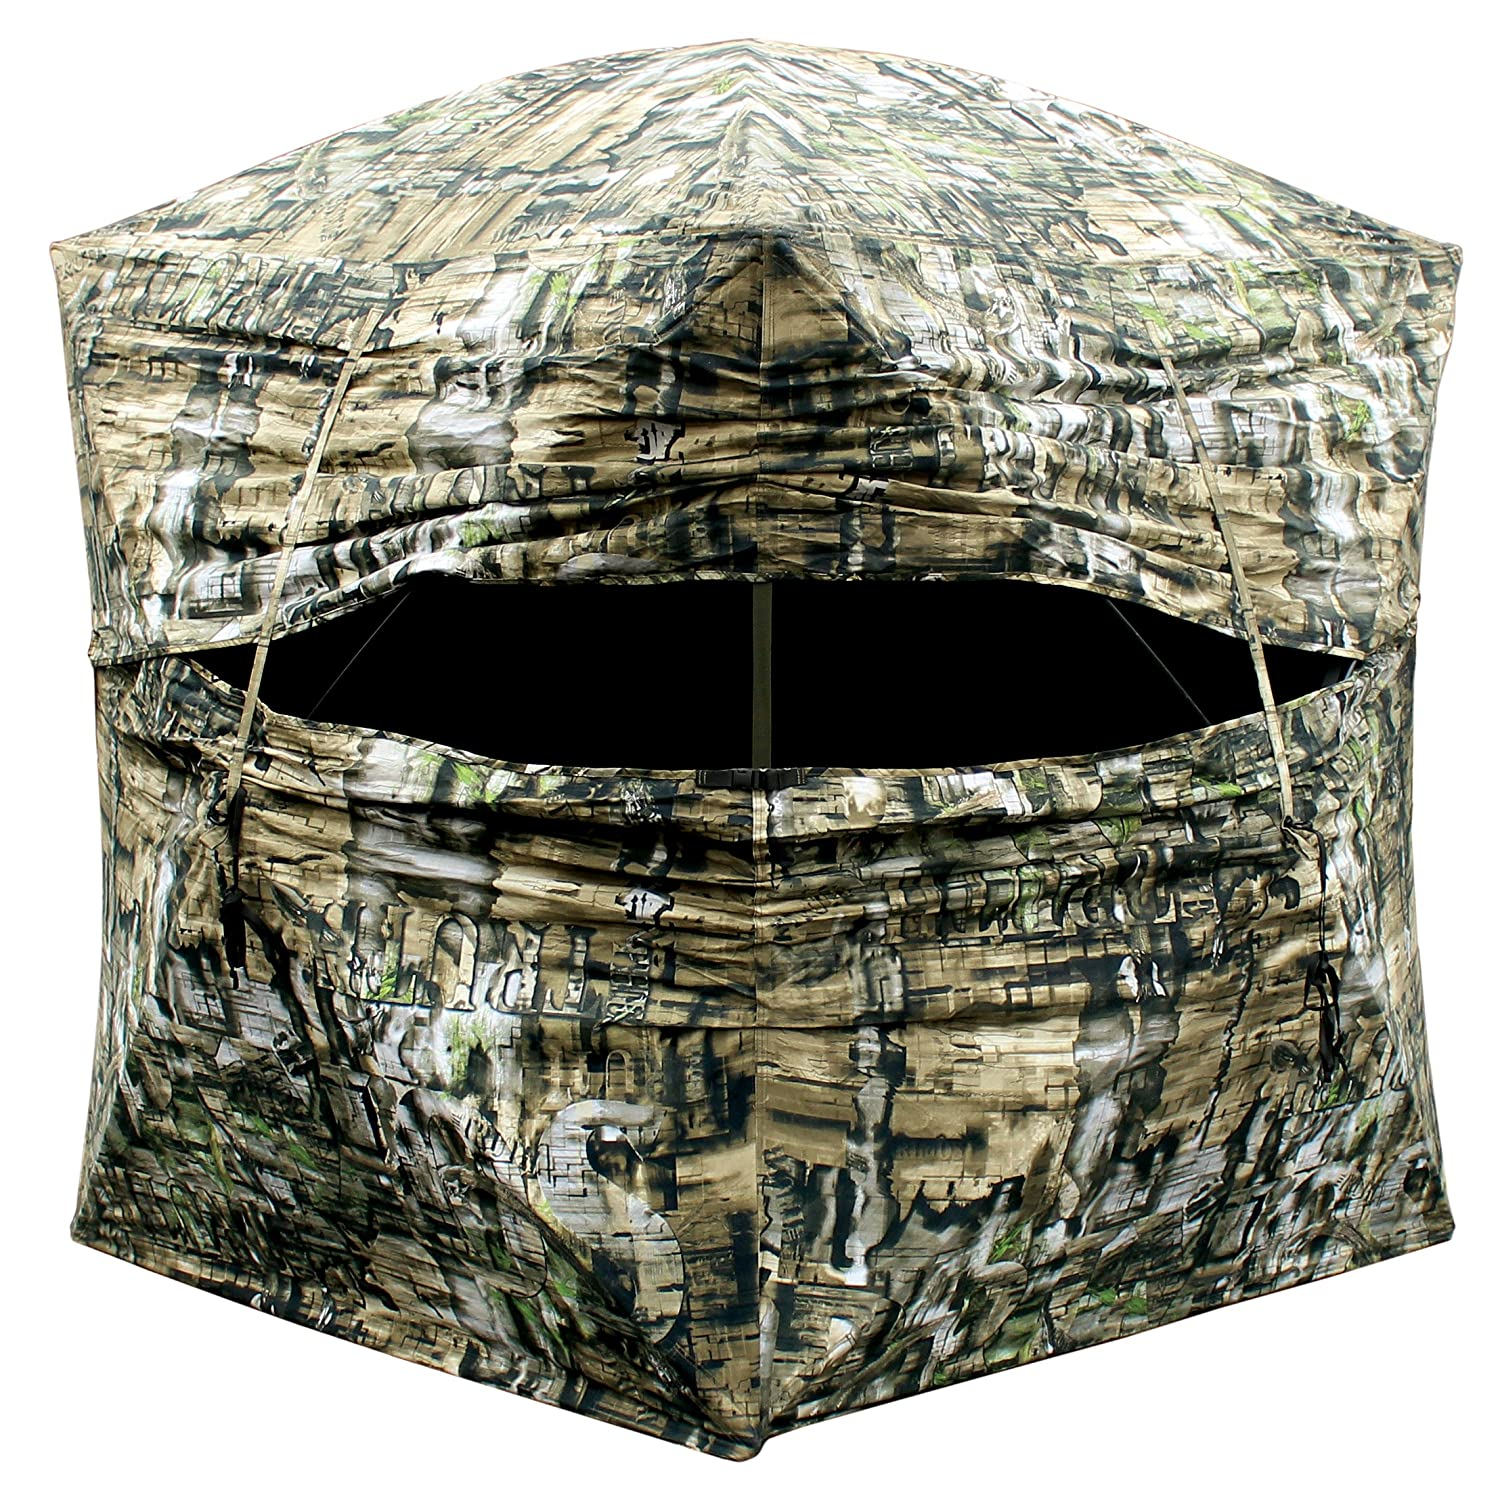 Wondrous Best Ground Blinds For Bow Hunting 2019 Review Big Game Inzonedesignstudio Interior Chair Design Inzonedesignstudiocom